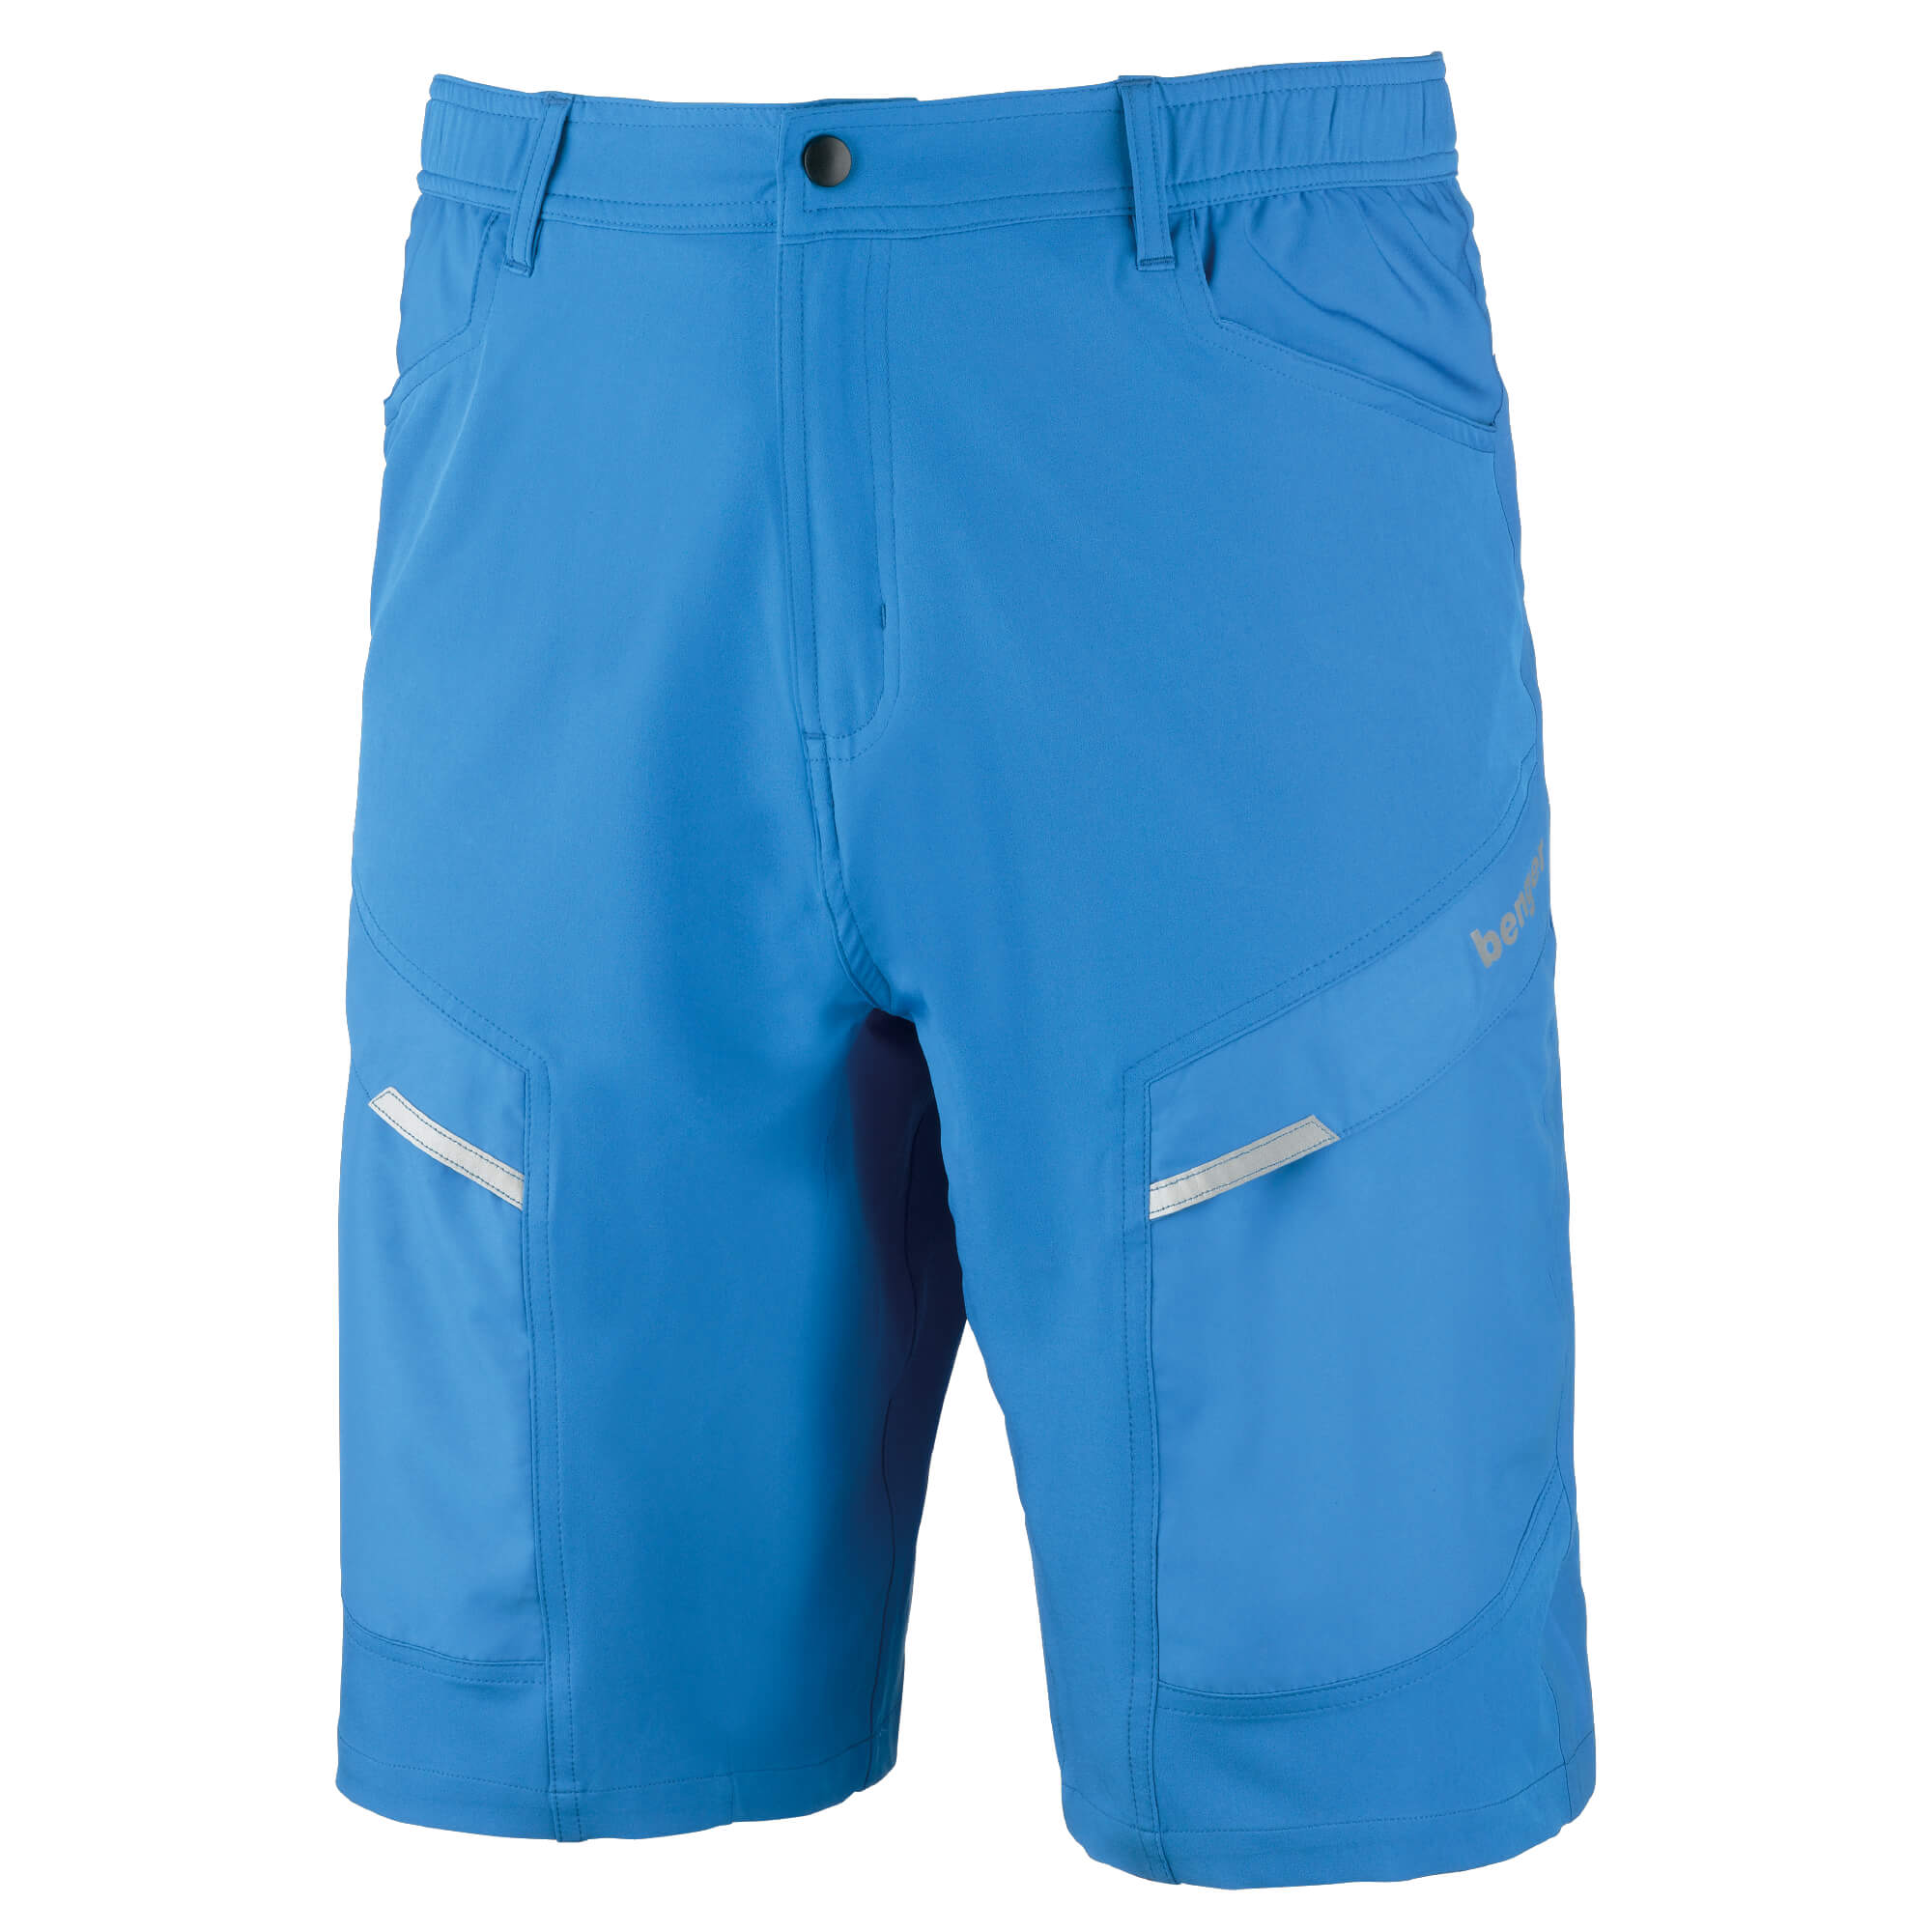 Pantaloni scurti MTB imagine